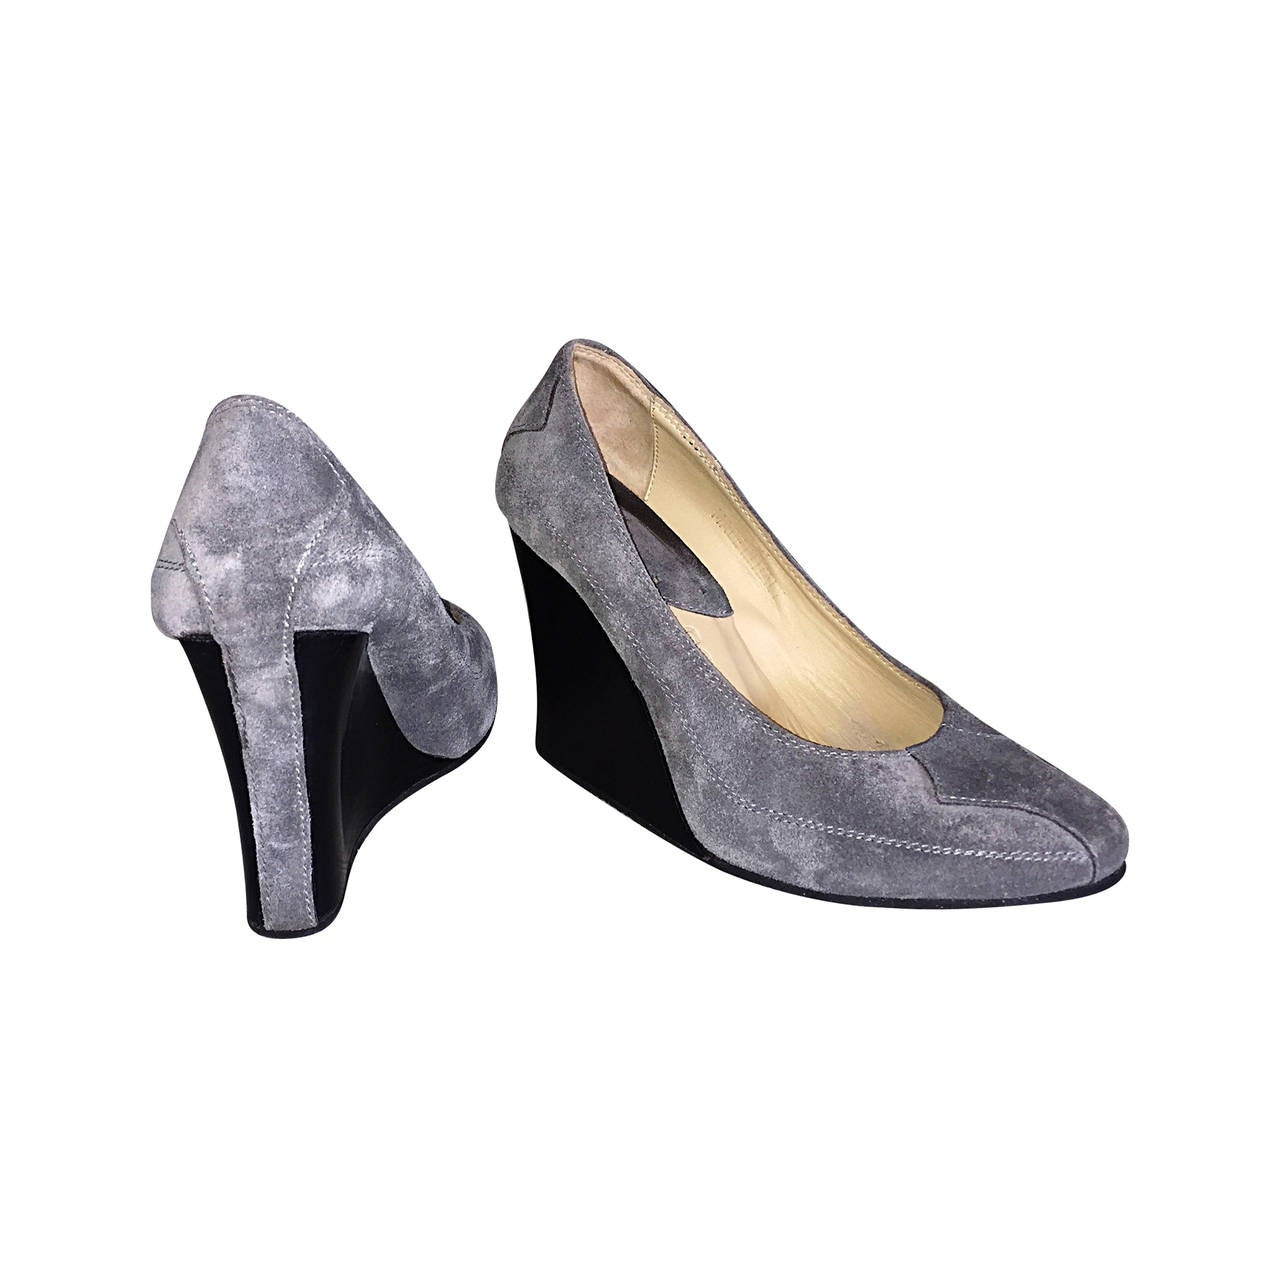 Never Worn Goldenbleu Gray Shoes / Wedges Size 36.5 / 6 - 6.5 Made in Italy For Sale